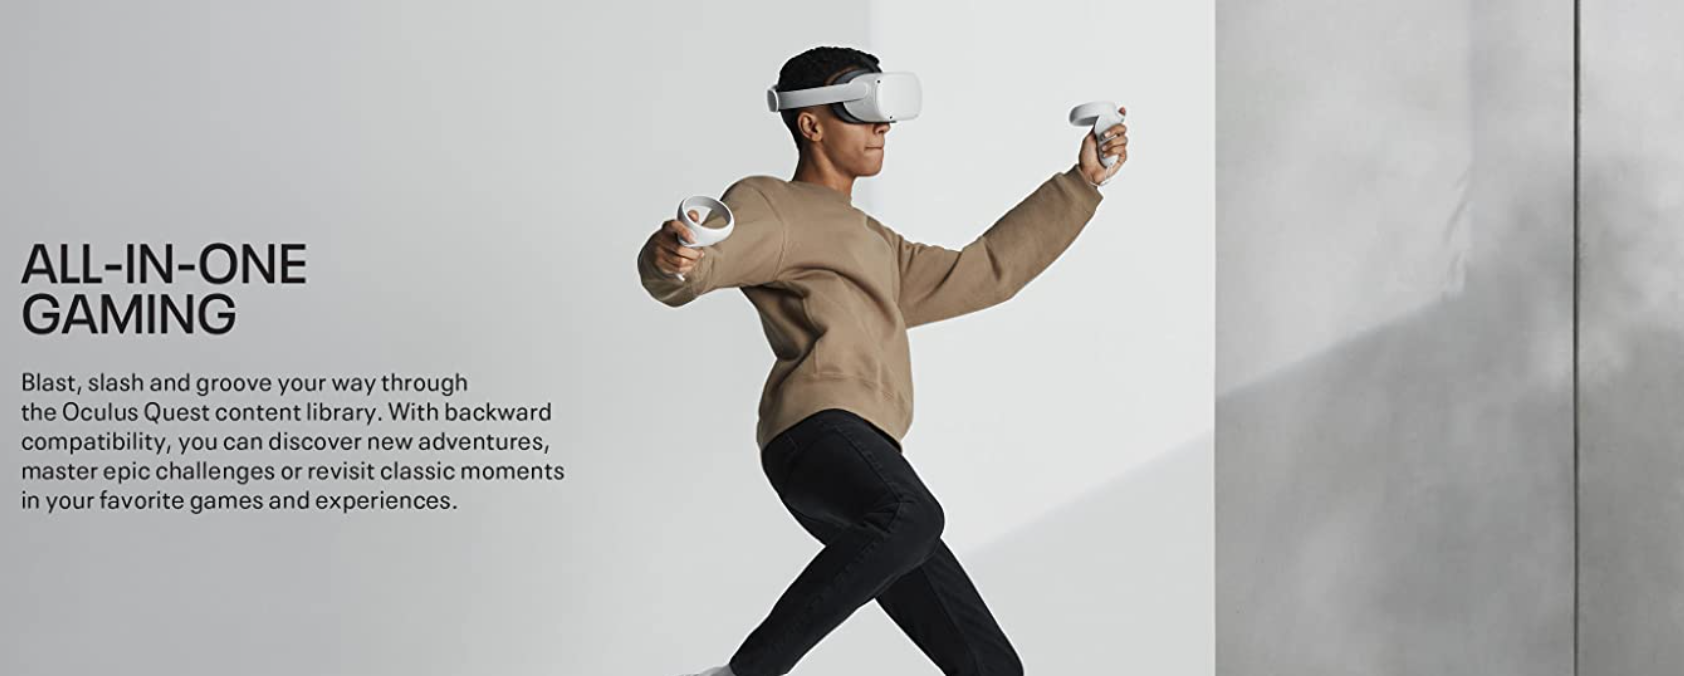 Oculus Quest 2 Advanced All-in-one Virtual Reality device (256GB)